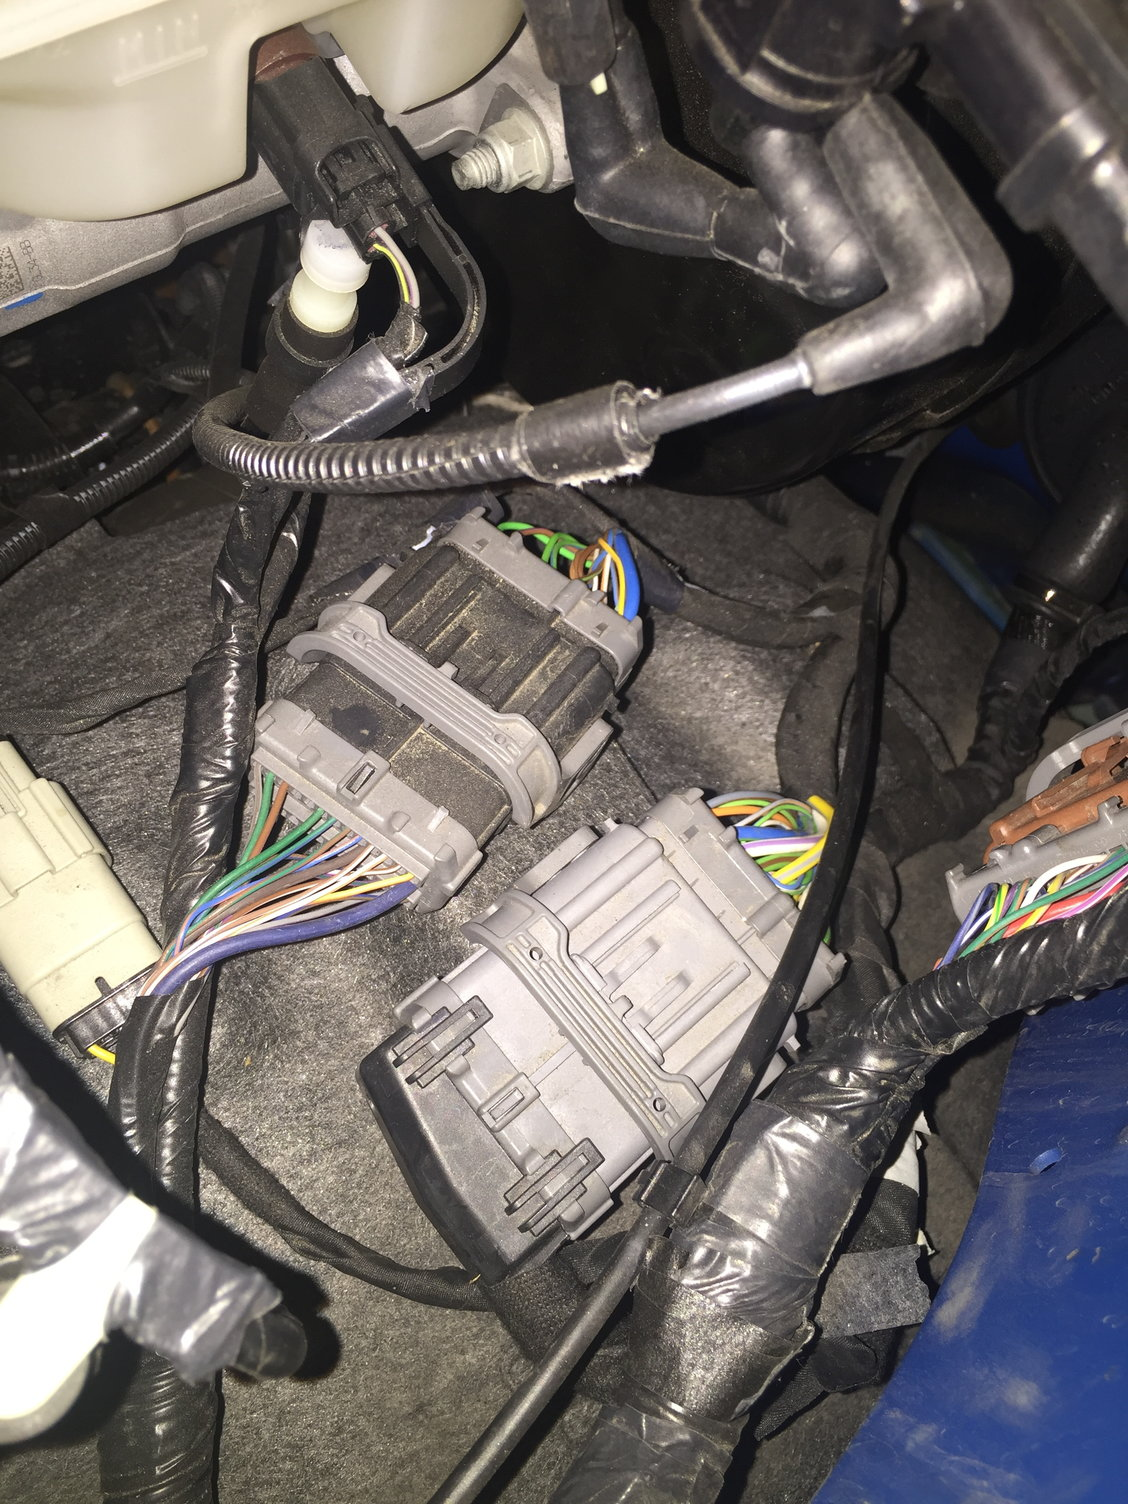 Backup Camera Install Ford F150 Forum Community Of Truck Fans 6 Pin Wiring Harness Diagram Notice The White Green Wire As Well Brown Violet In Picture Below Cap Removed